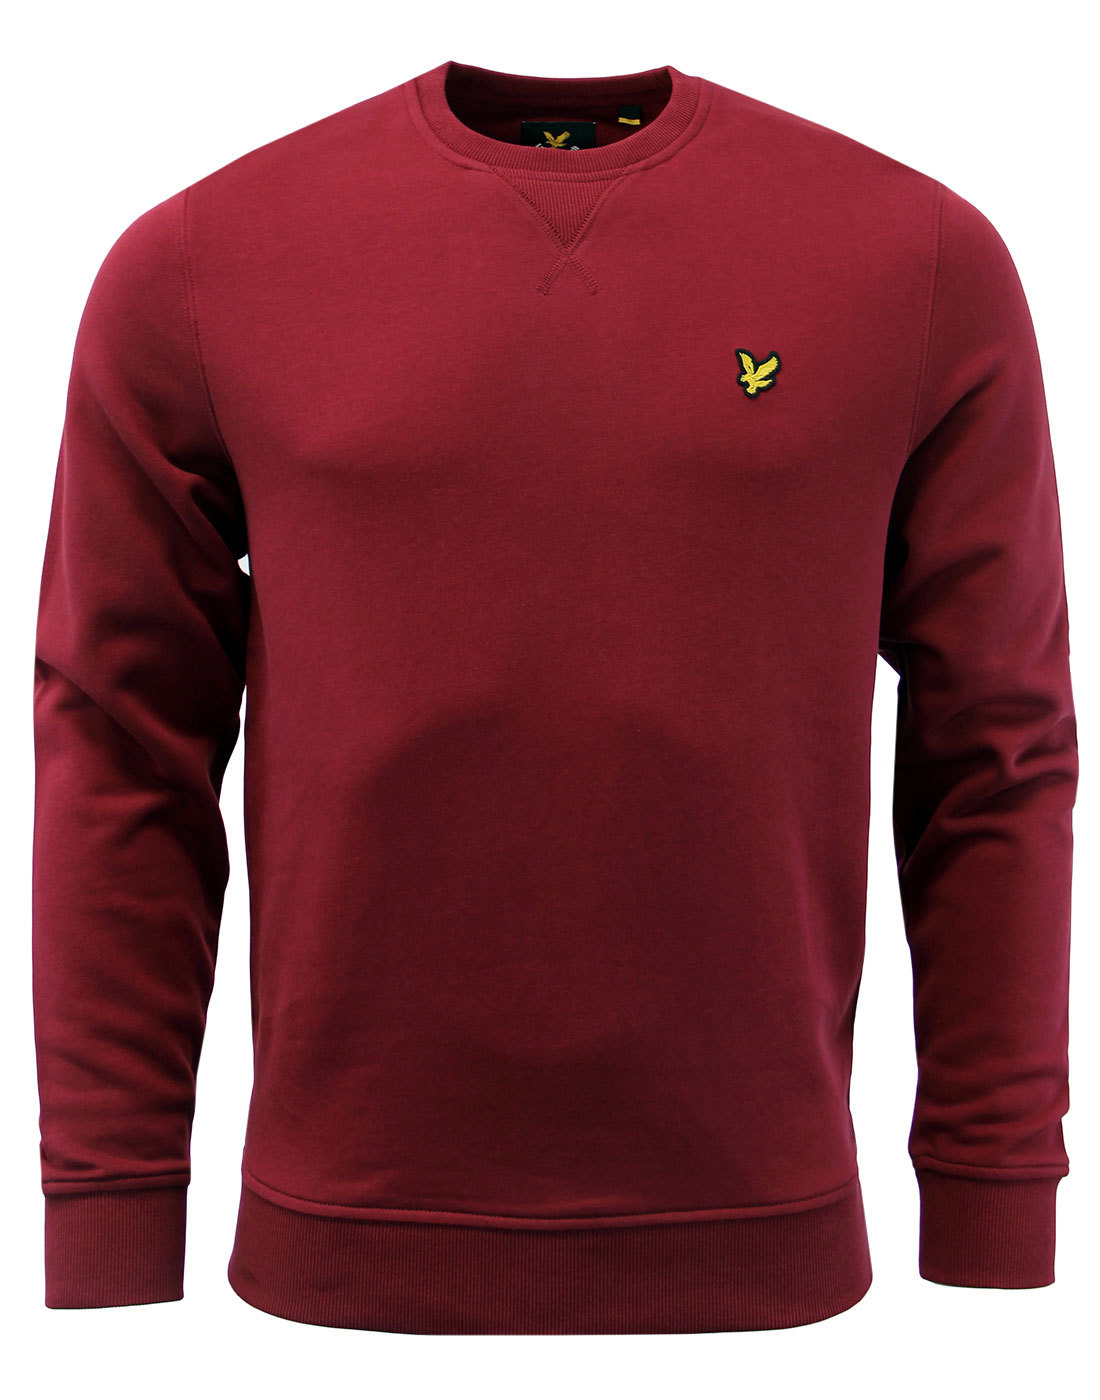 LYLE & SCOTT Retro Mod Crew Neck Sweatshirt CLARET